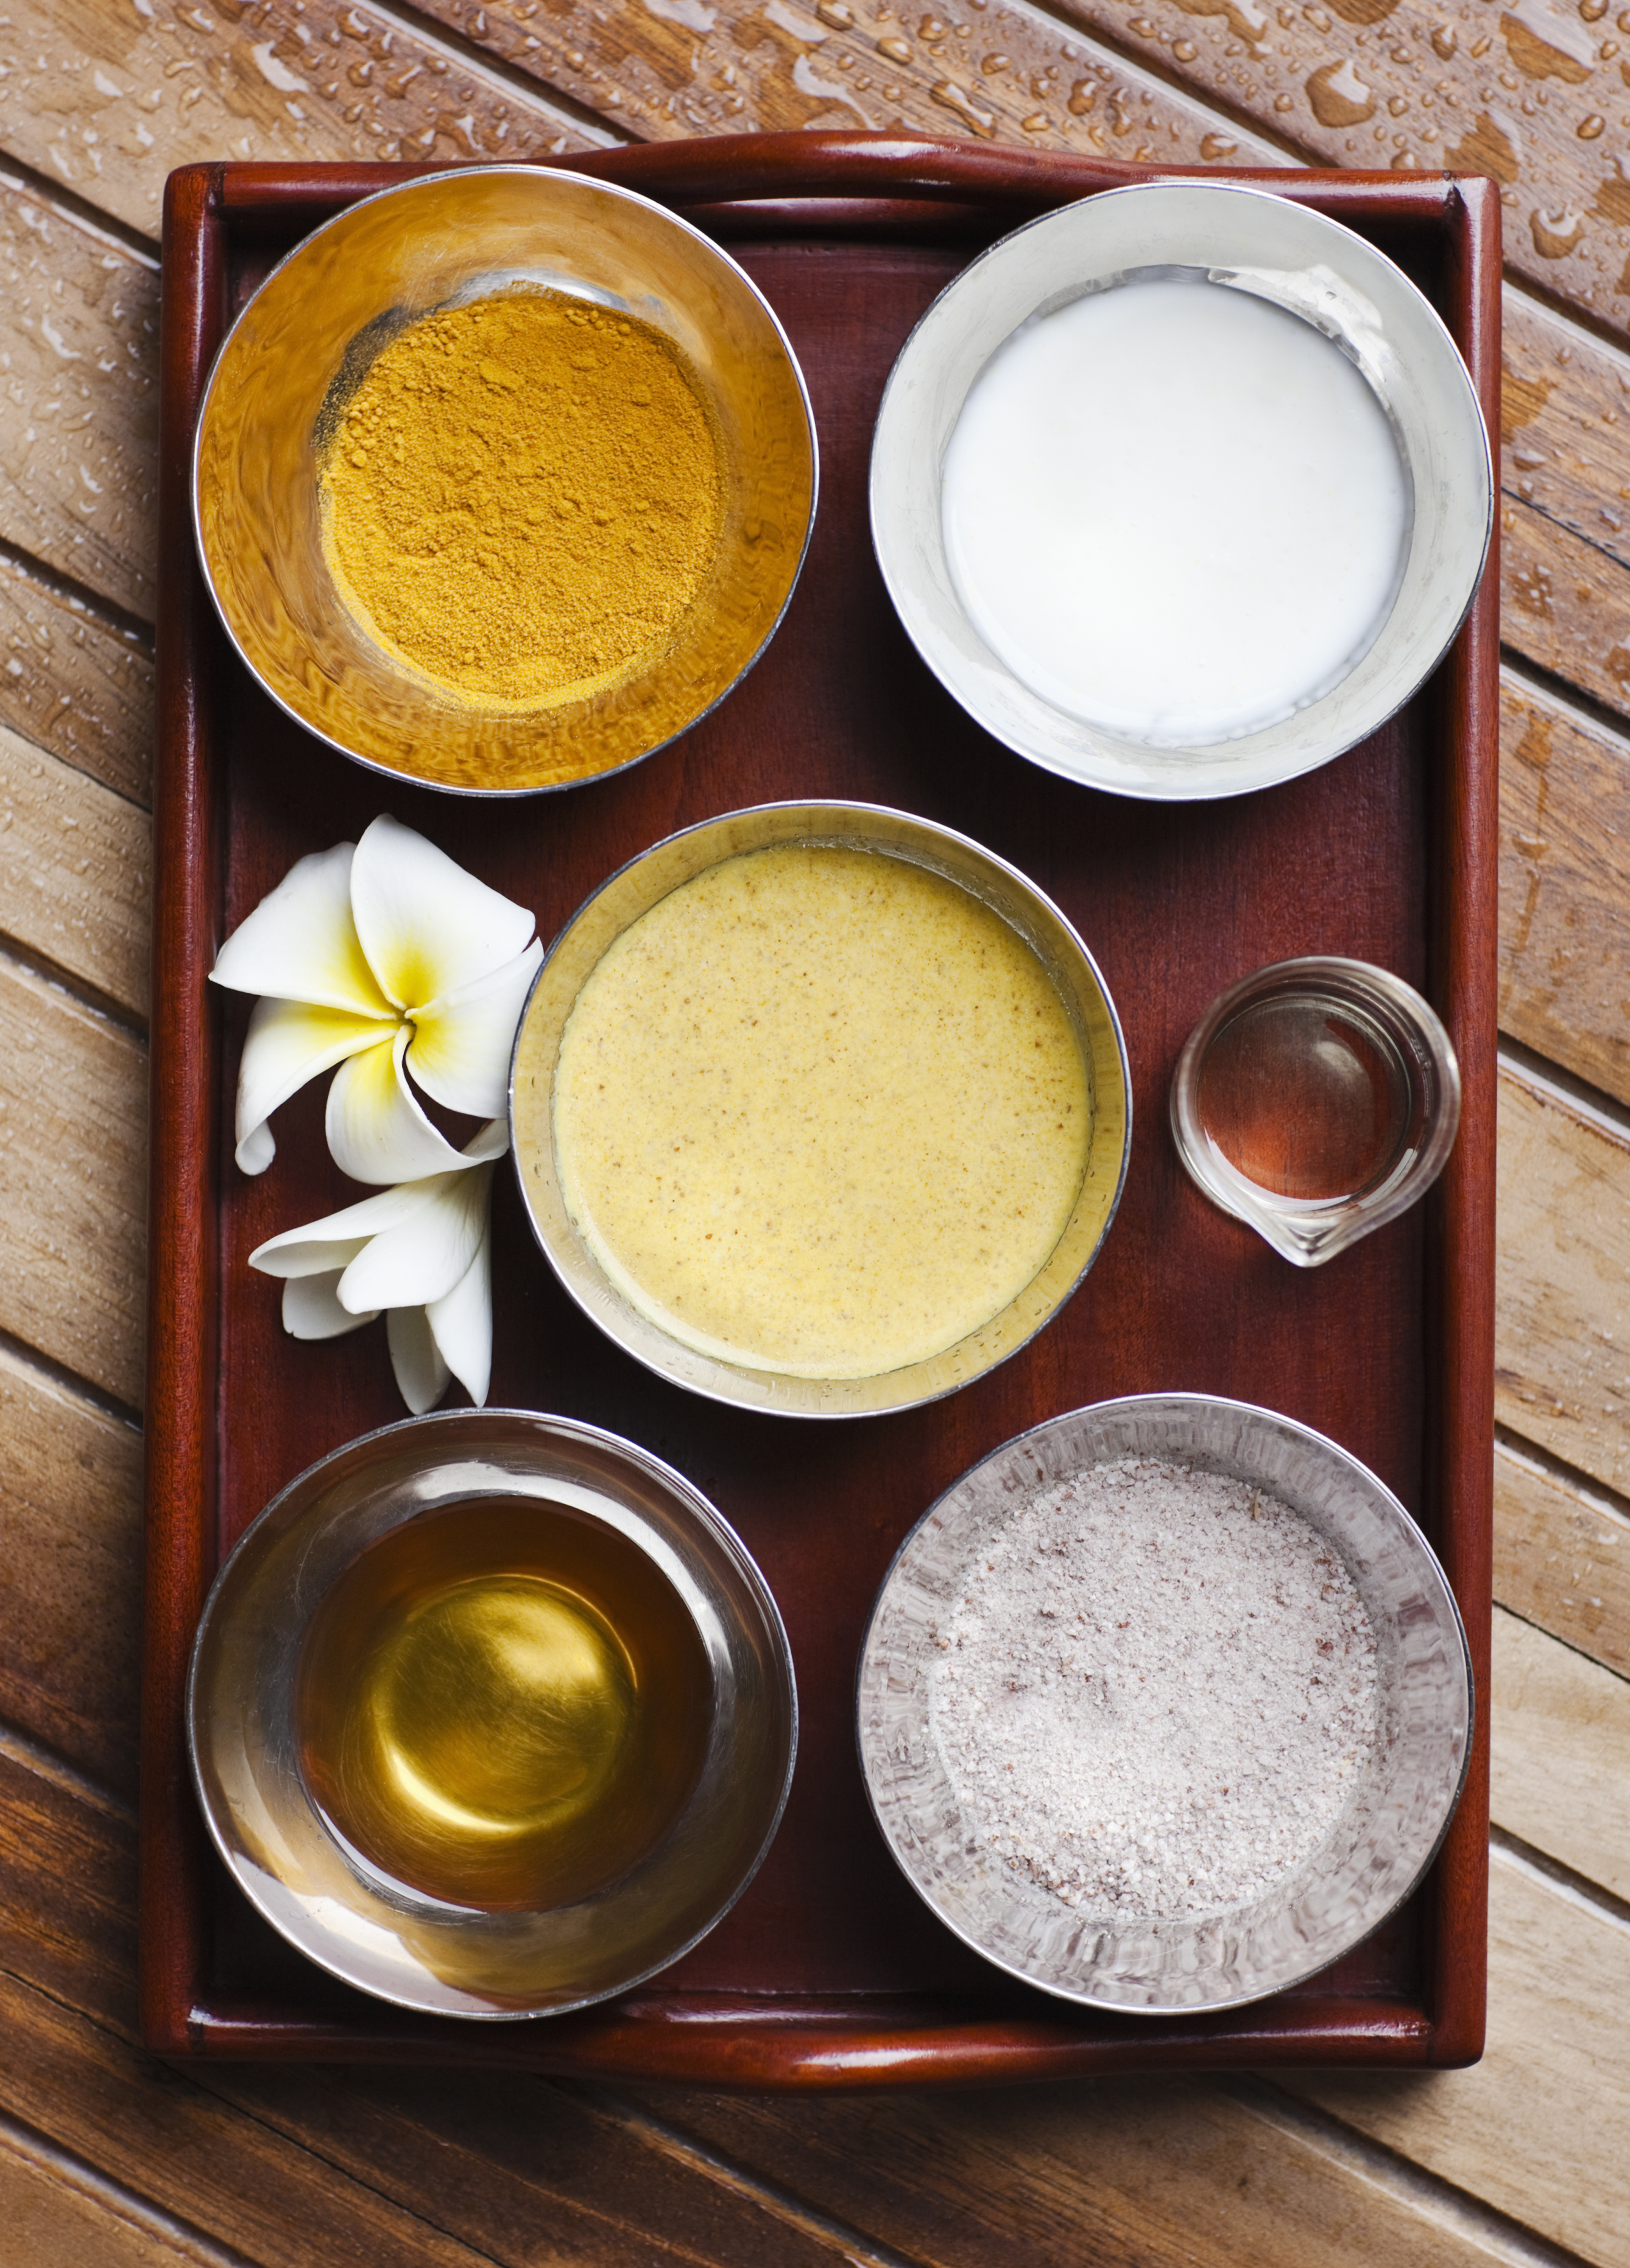 Diy Body Scrub 5 Recipes For Every Skin Care Need Stylecaster